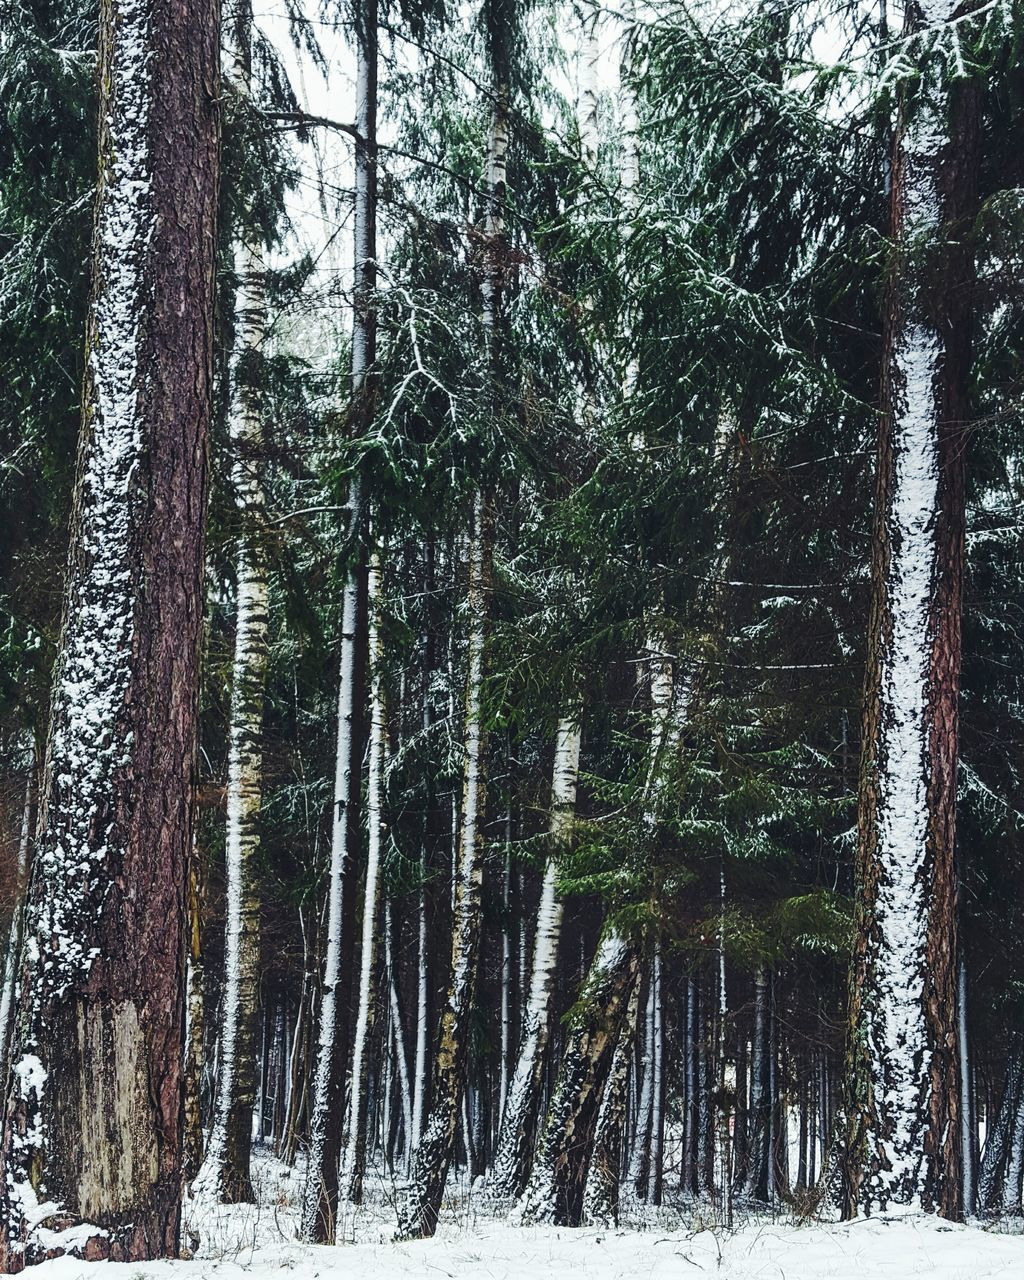 snow, winter, tree, cold temperature, tree trunk, nature, beauty in nature, no people, day, forest, weather, outdoors, tranquility, growth, scenics, landscape, branch